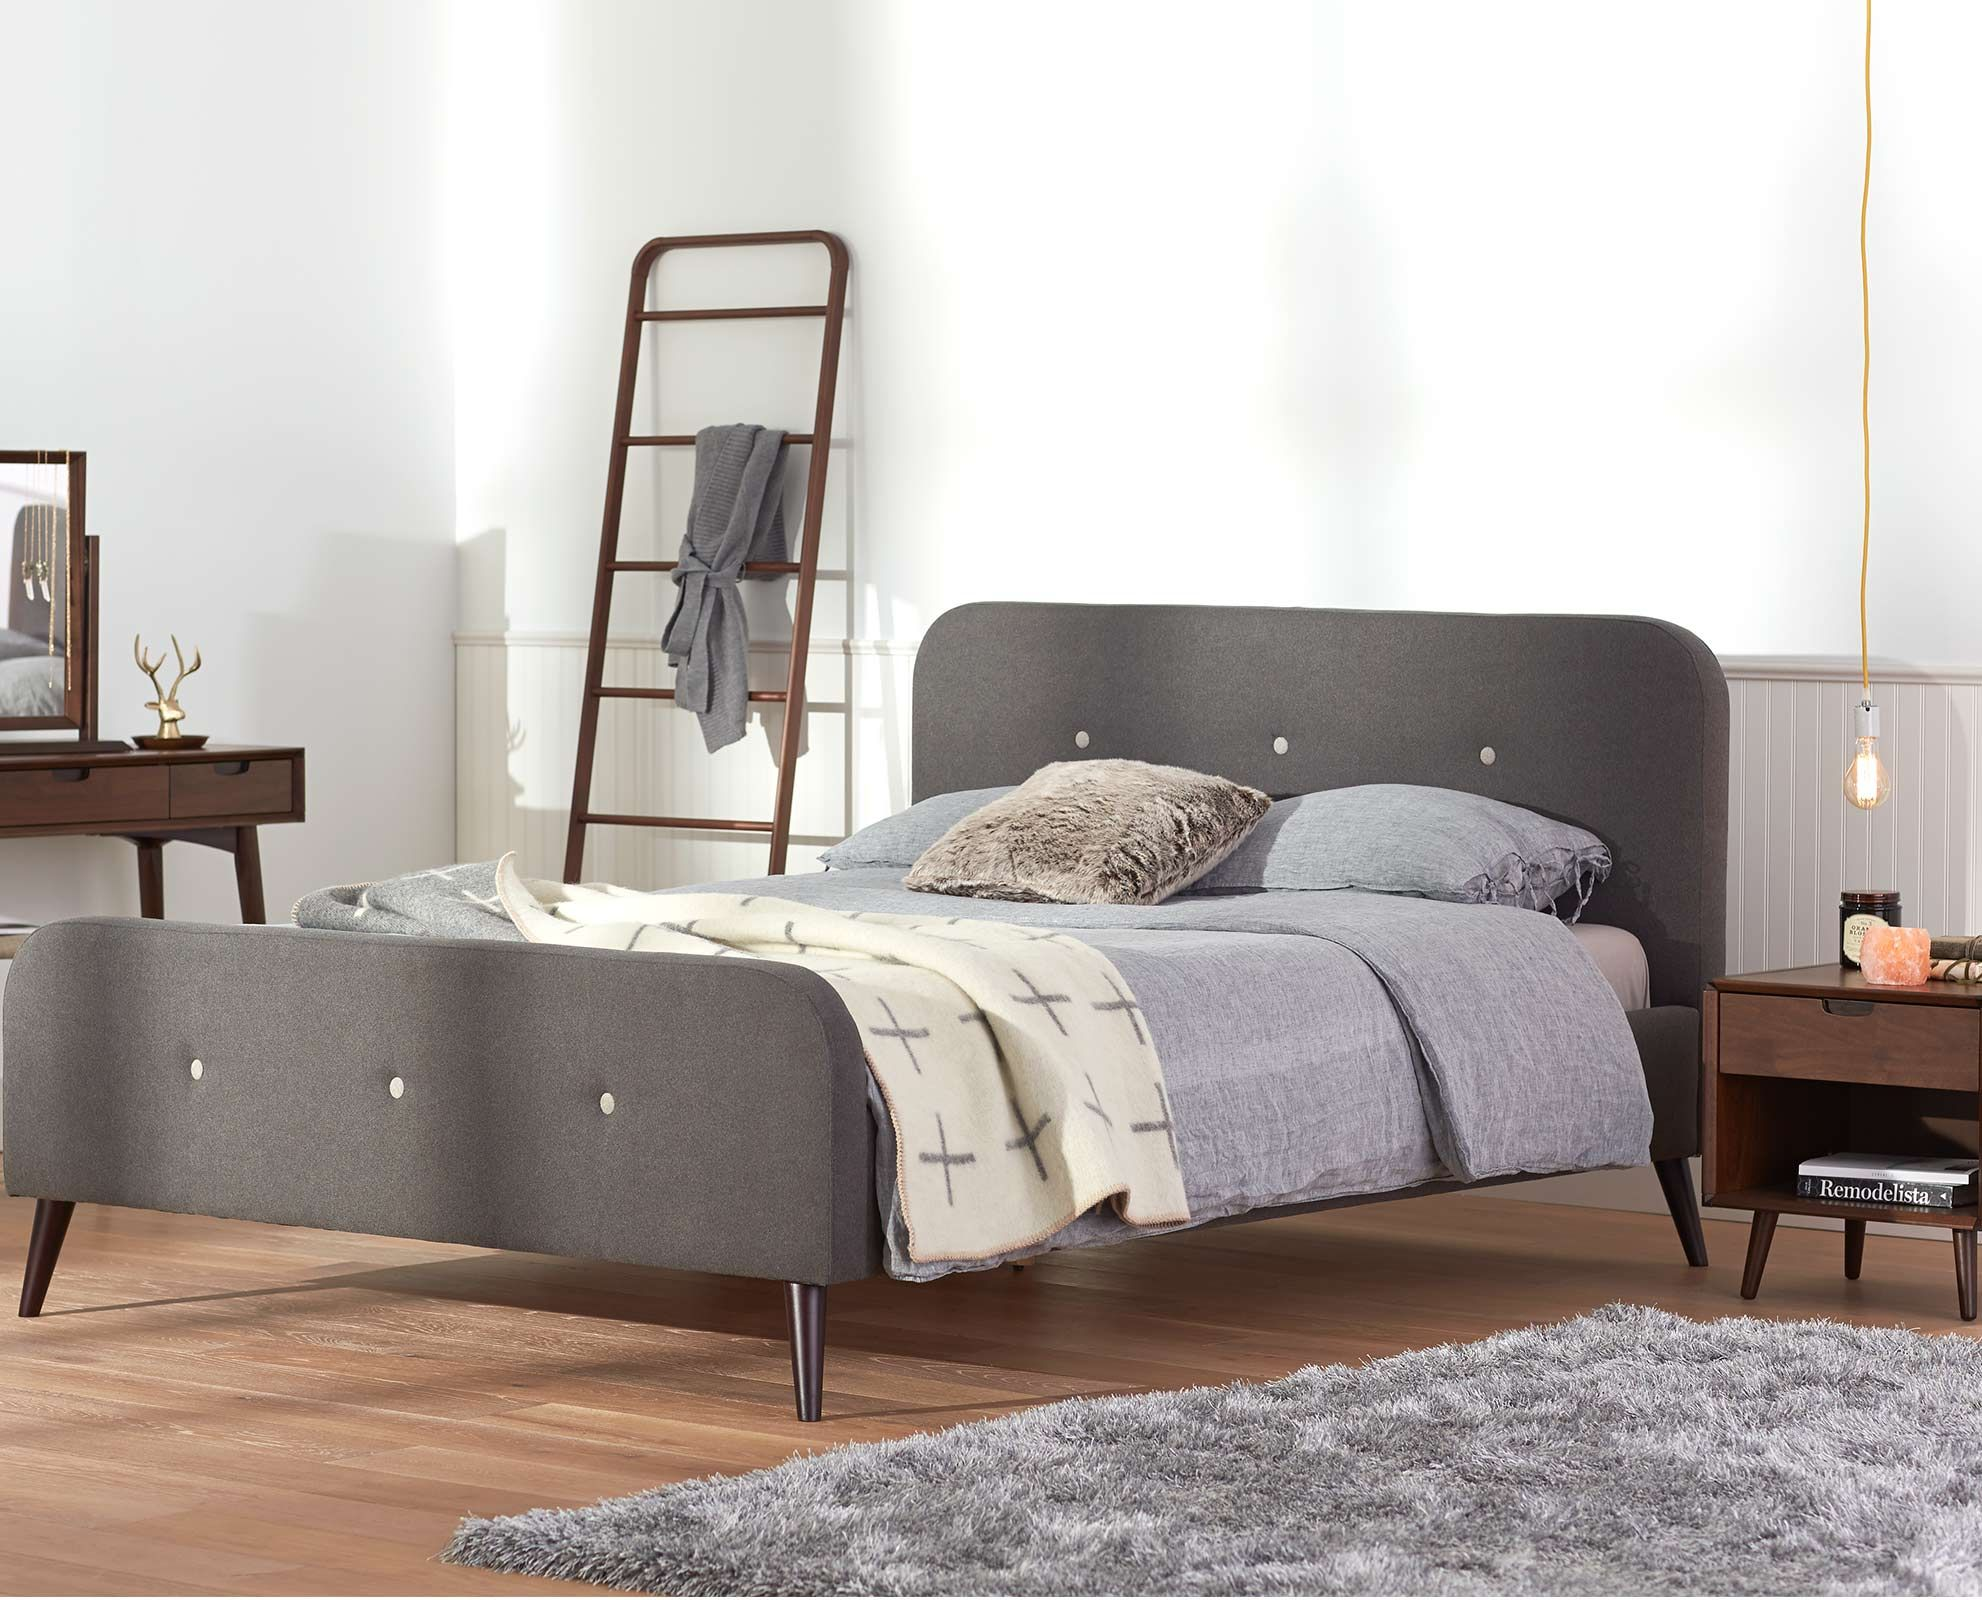 Bon Cool New Scandinavian Bedroom Furniture 46 For Interior Decor Home With Scandinavian  Bedroom Furniture